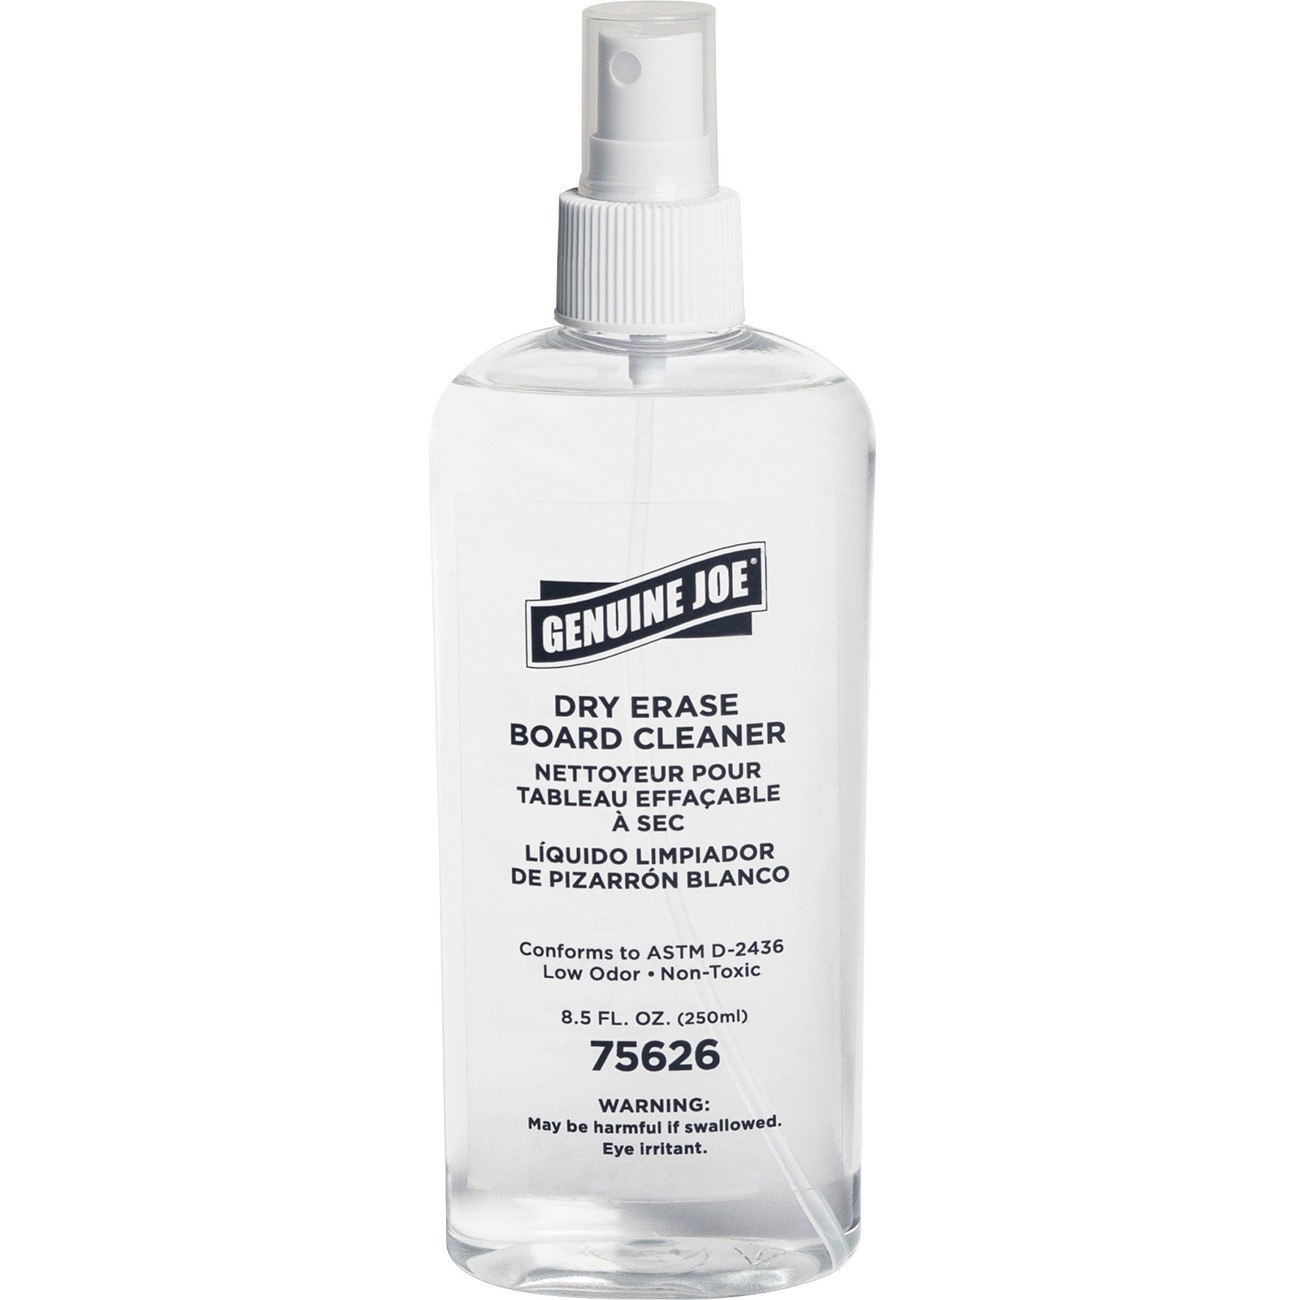 super popular f55eb df944 Low-odor dry-erase board cleaner comes in a convenient 8 oz. pump spray  bottle. It cleans shadows, ghosting and stubborn marks from dry-erase  boards.